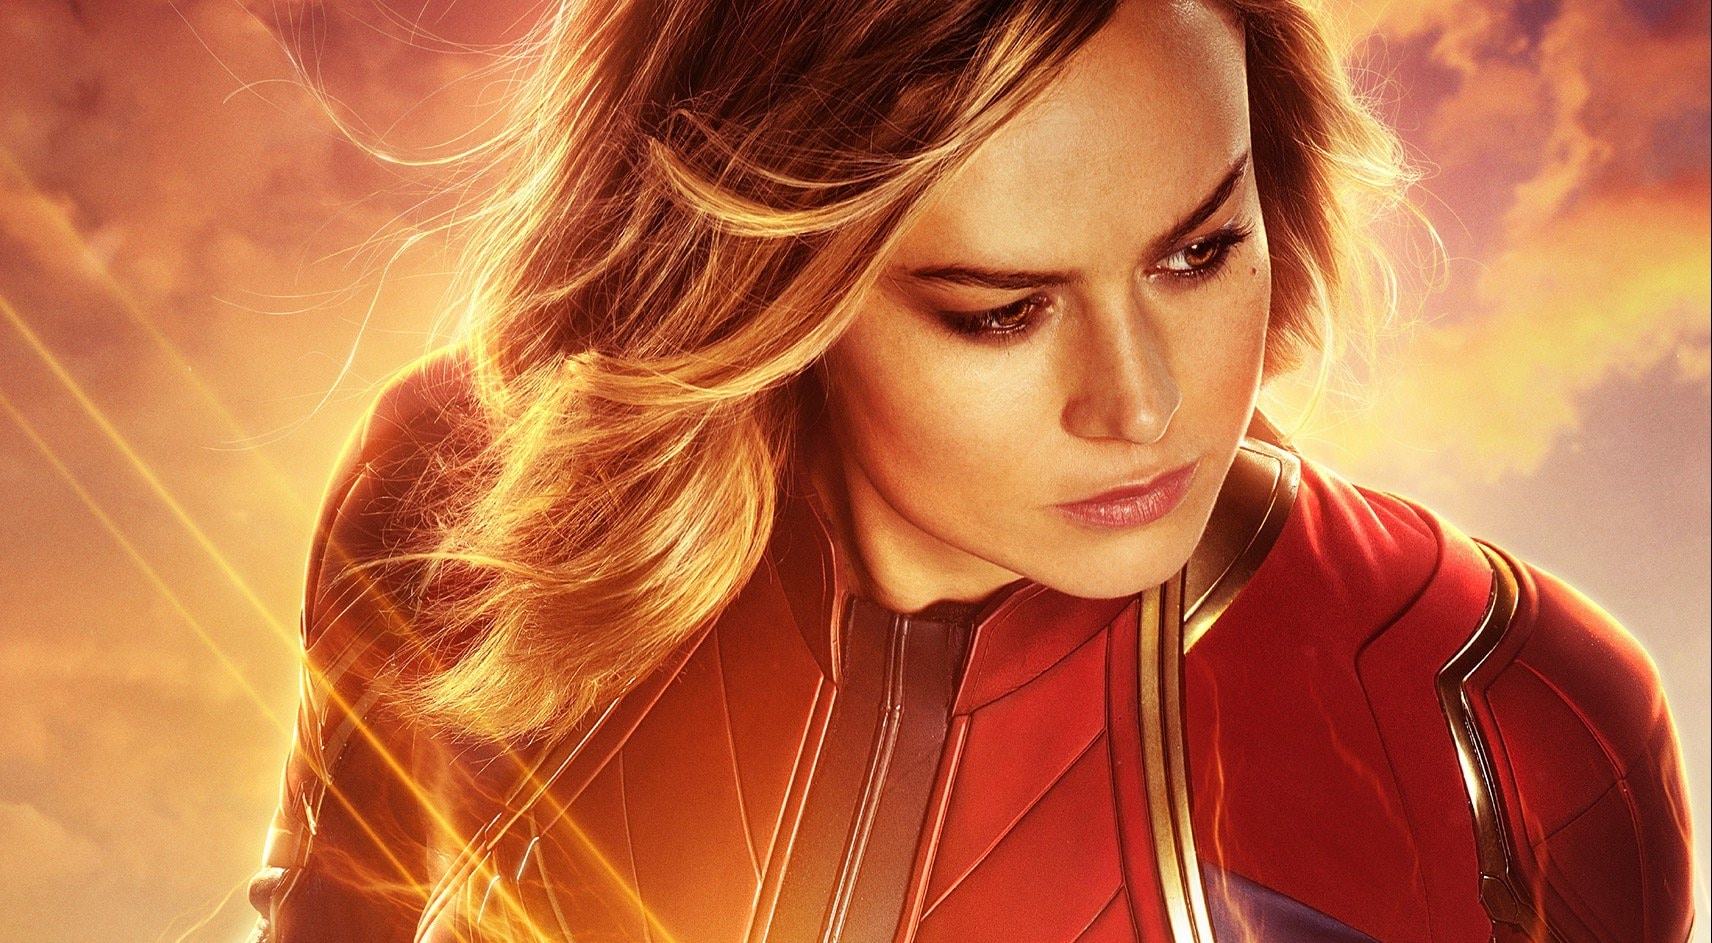 captain-marvel-endcredit-scene